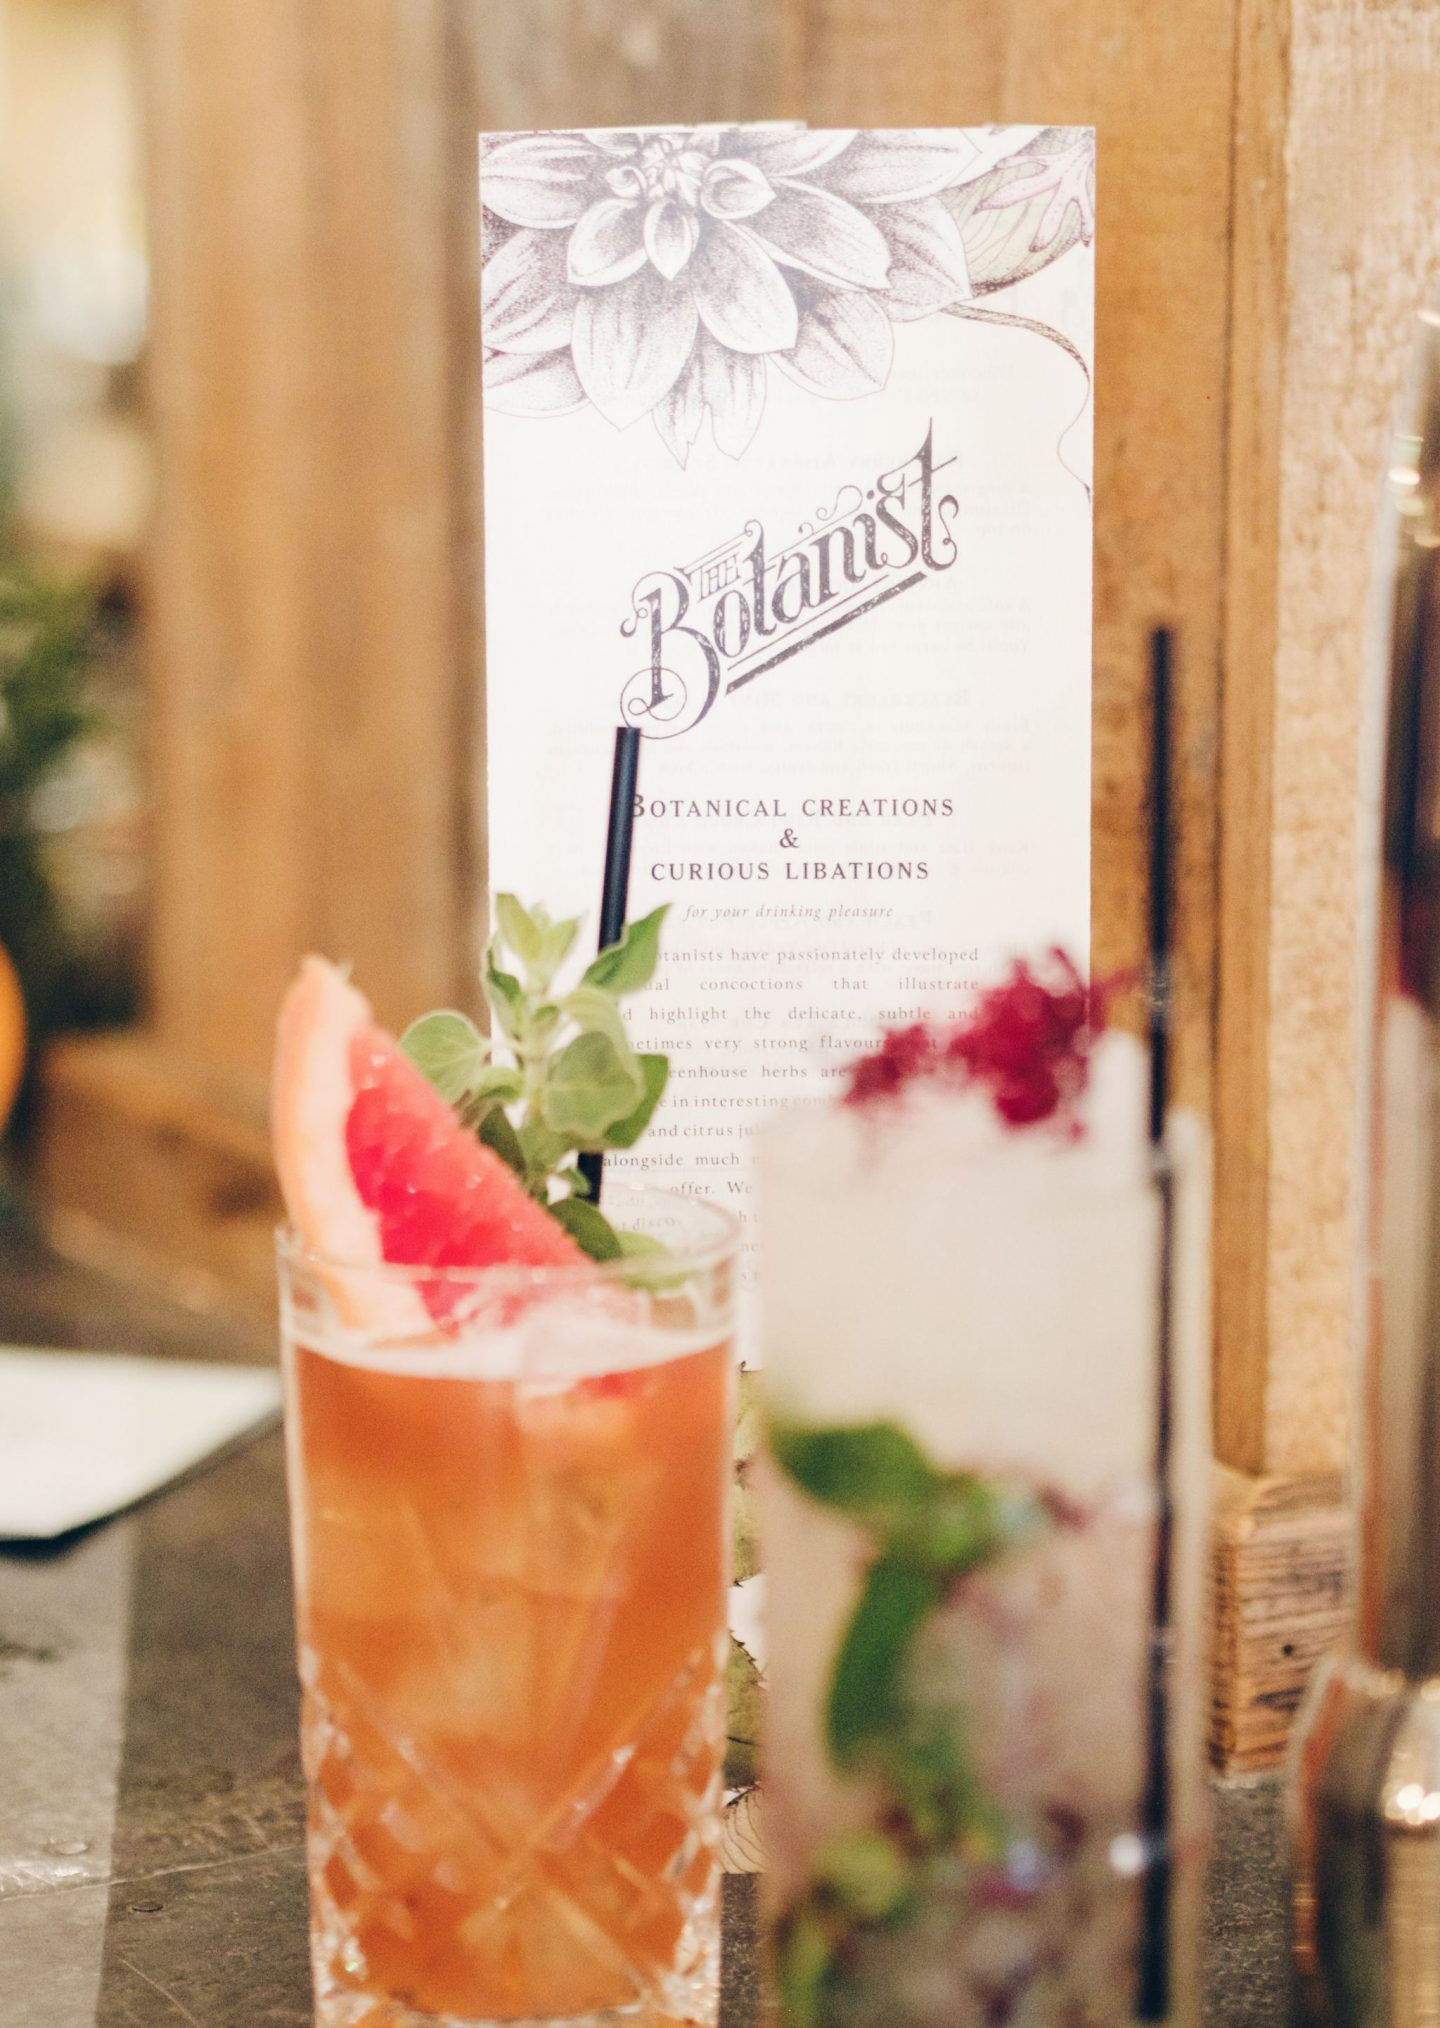 The Botanist cocktails